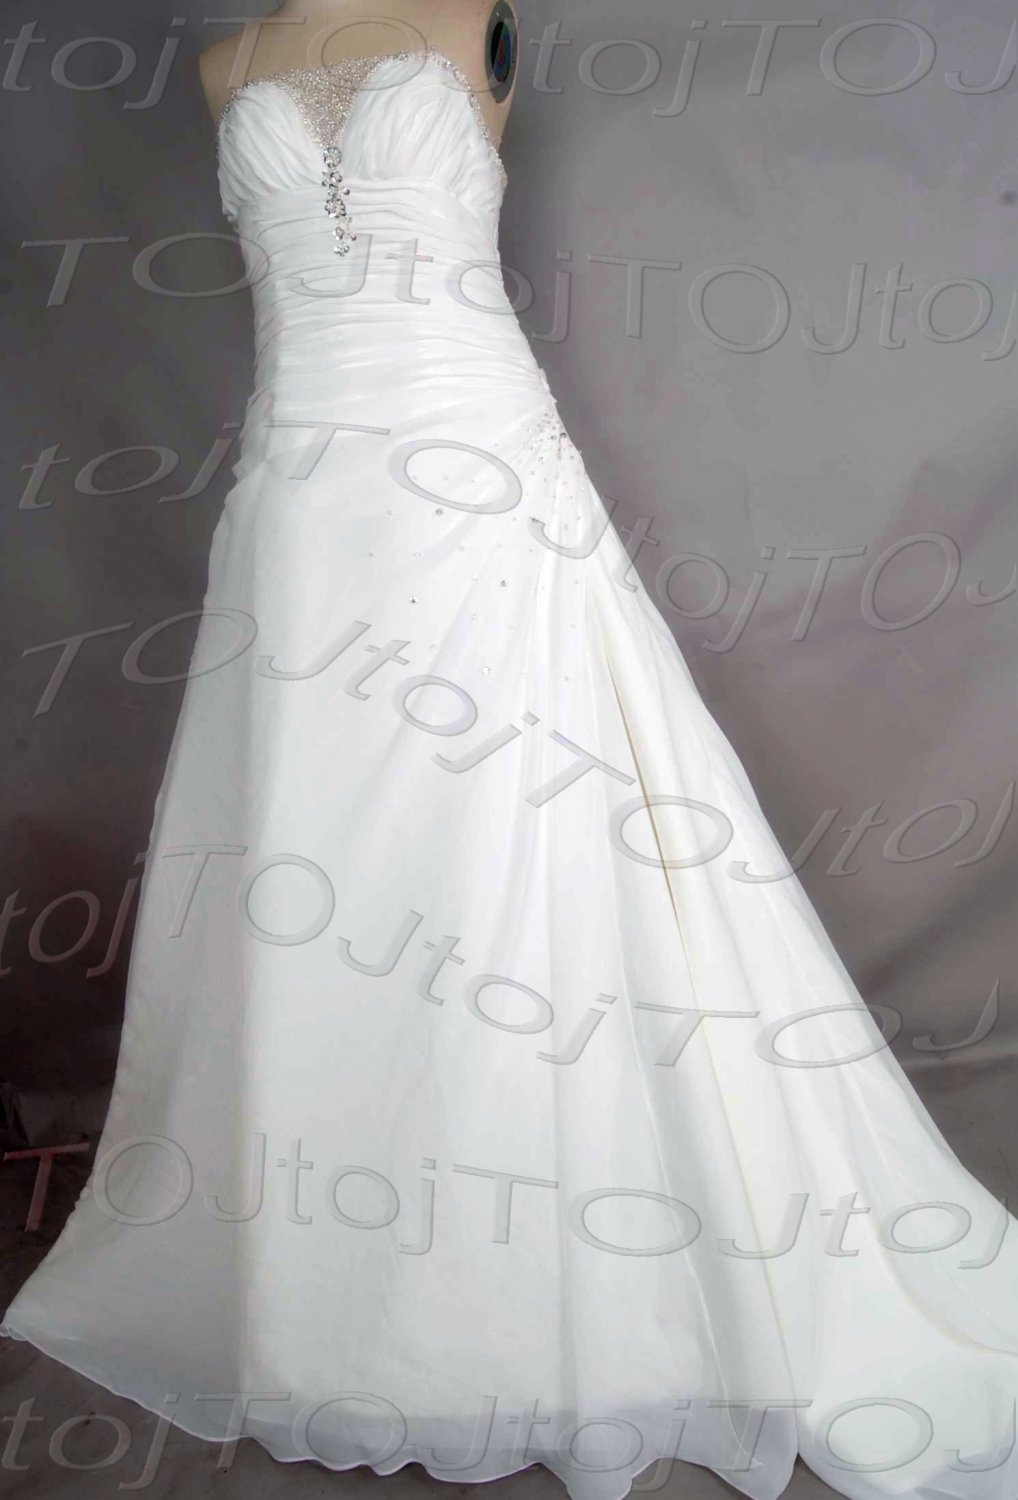 Strapless A-line wedding gown-DWG0869